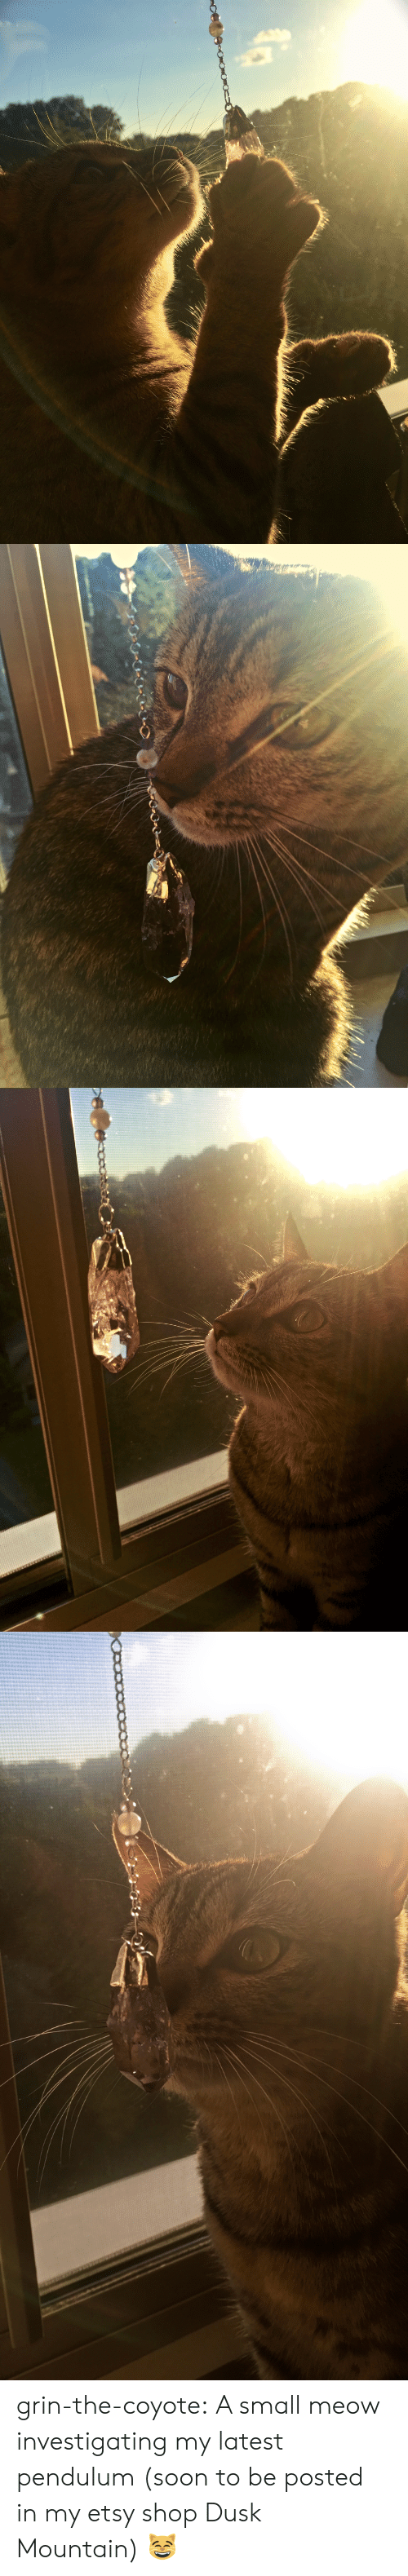 pendulum: grin-the-coyote: A small meow investigating my latest pendulum (soon to be posted in my etsy shop Dusk Mountain) 😸